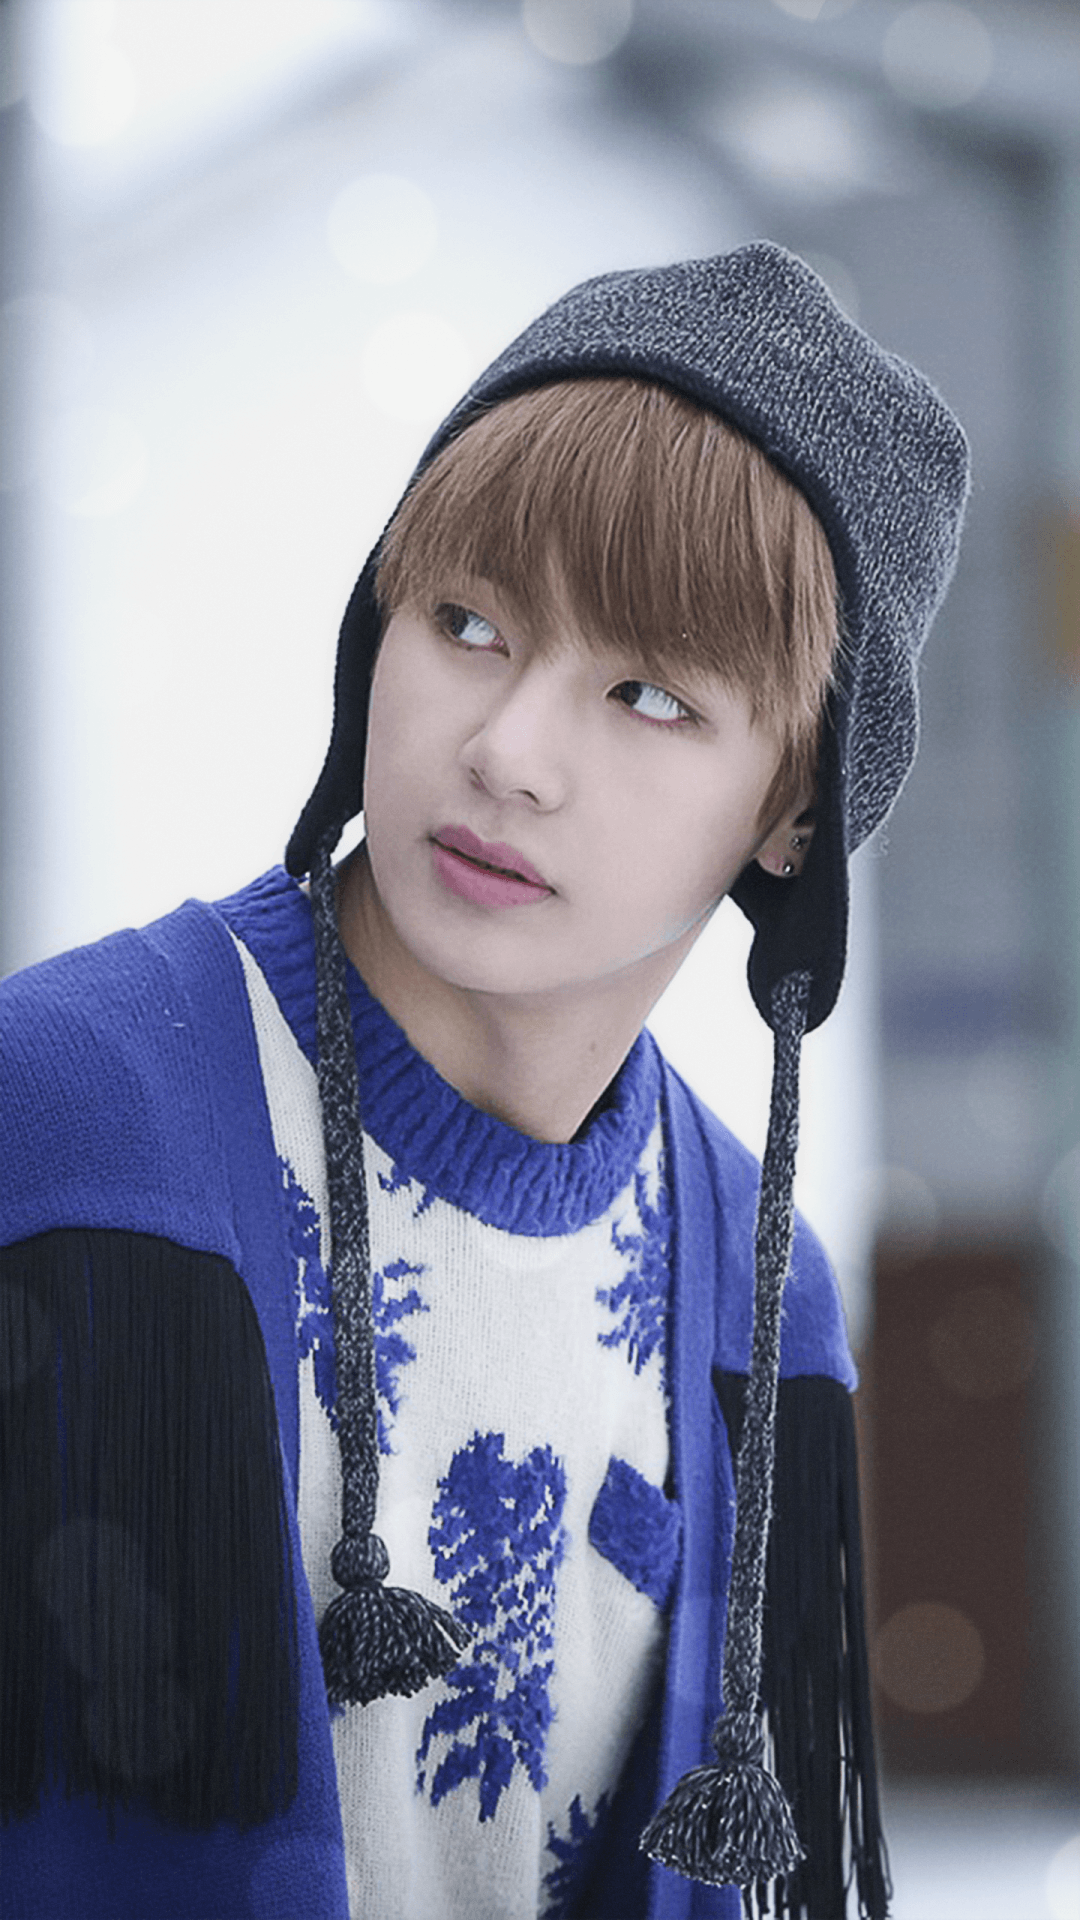 18 Bts V Hd Wallpapers On Wallpapersafari